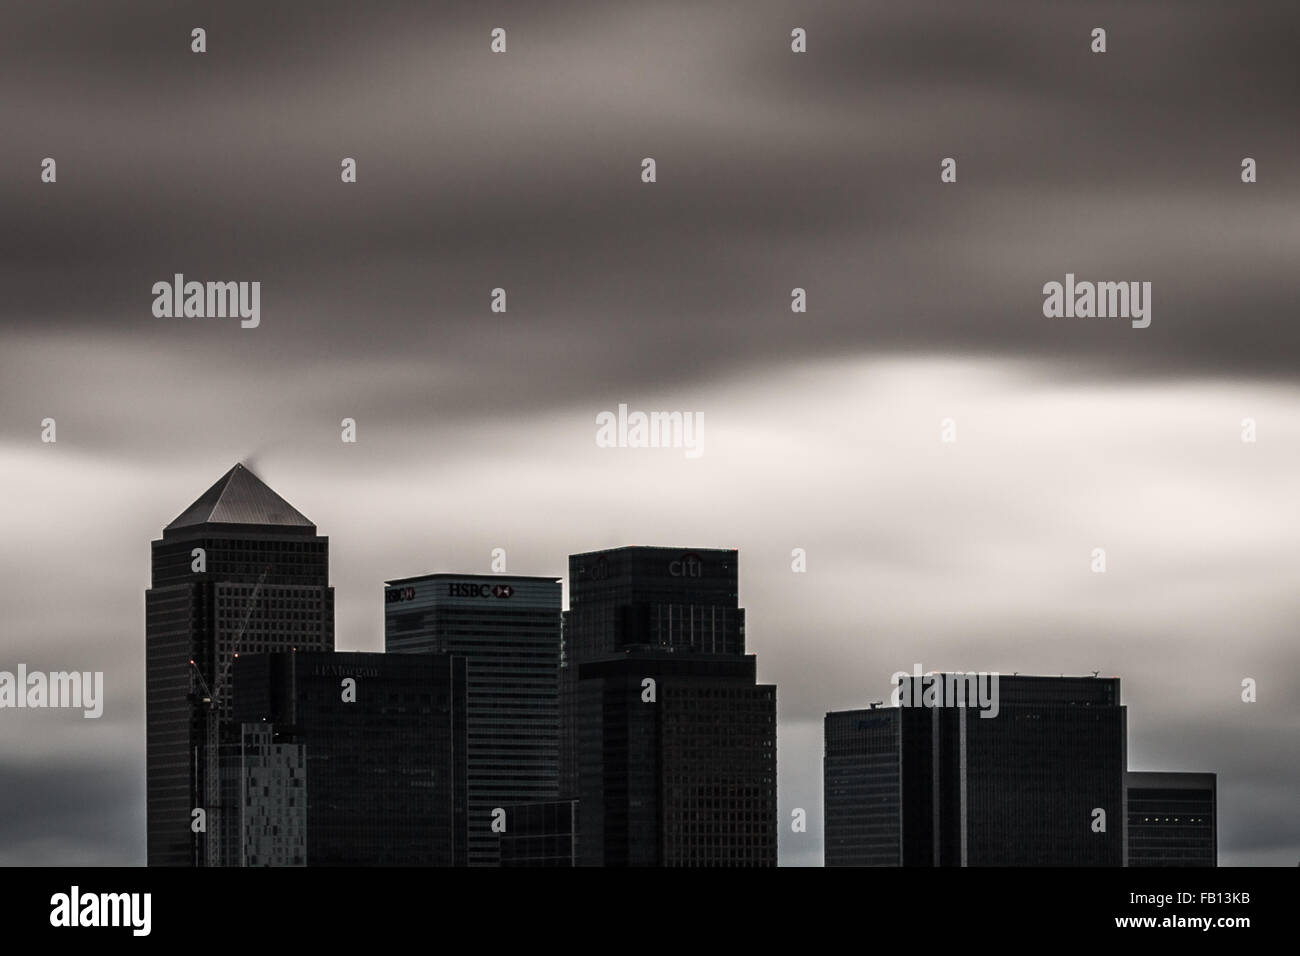 London, UK. 7th January, 2016. UK Weather: Fast cloud and dark skies over Canary Wharf business park buildings Credit: - Stock Image